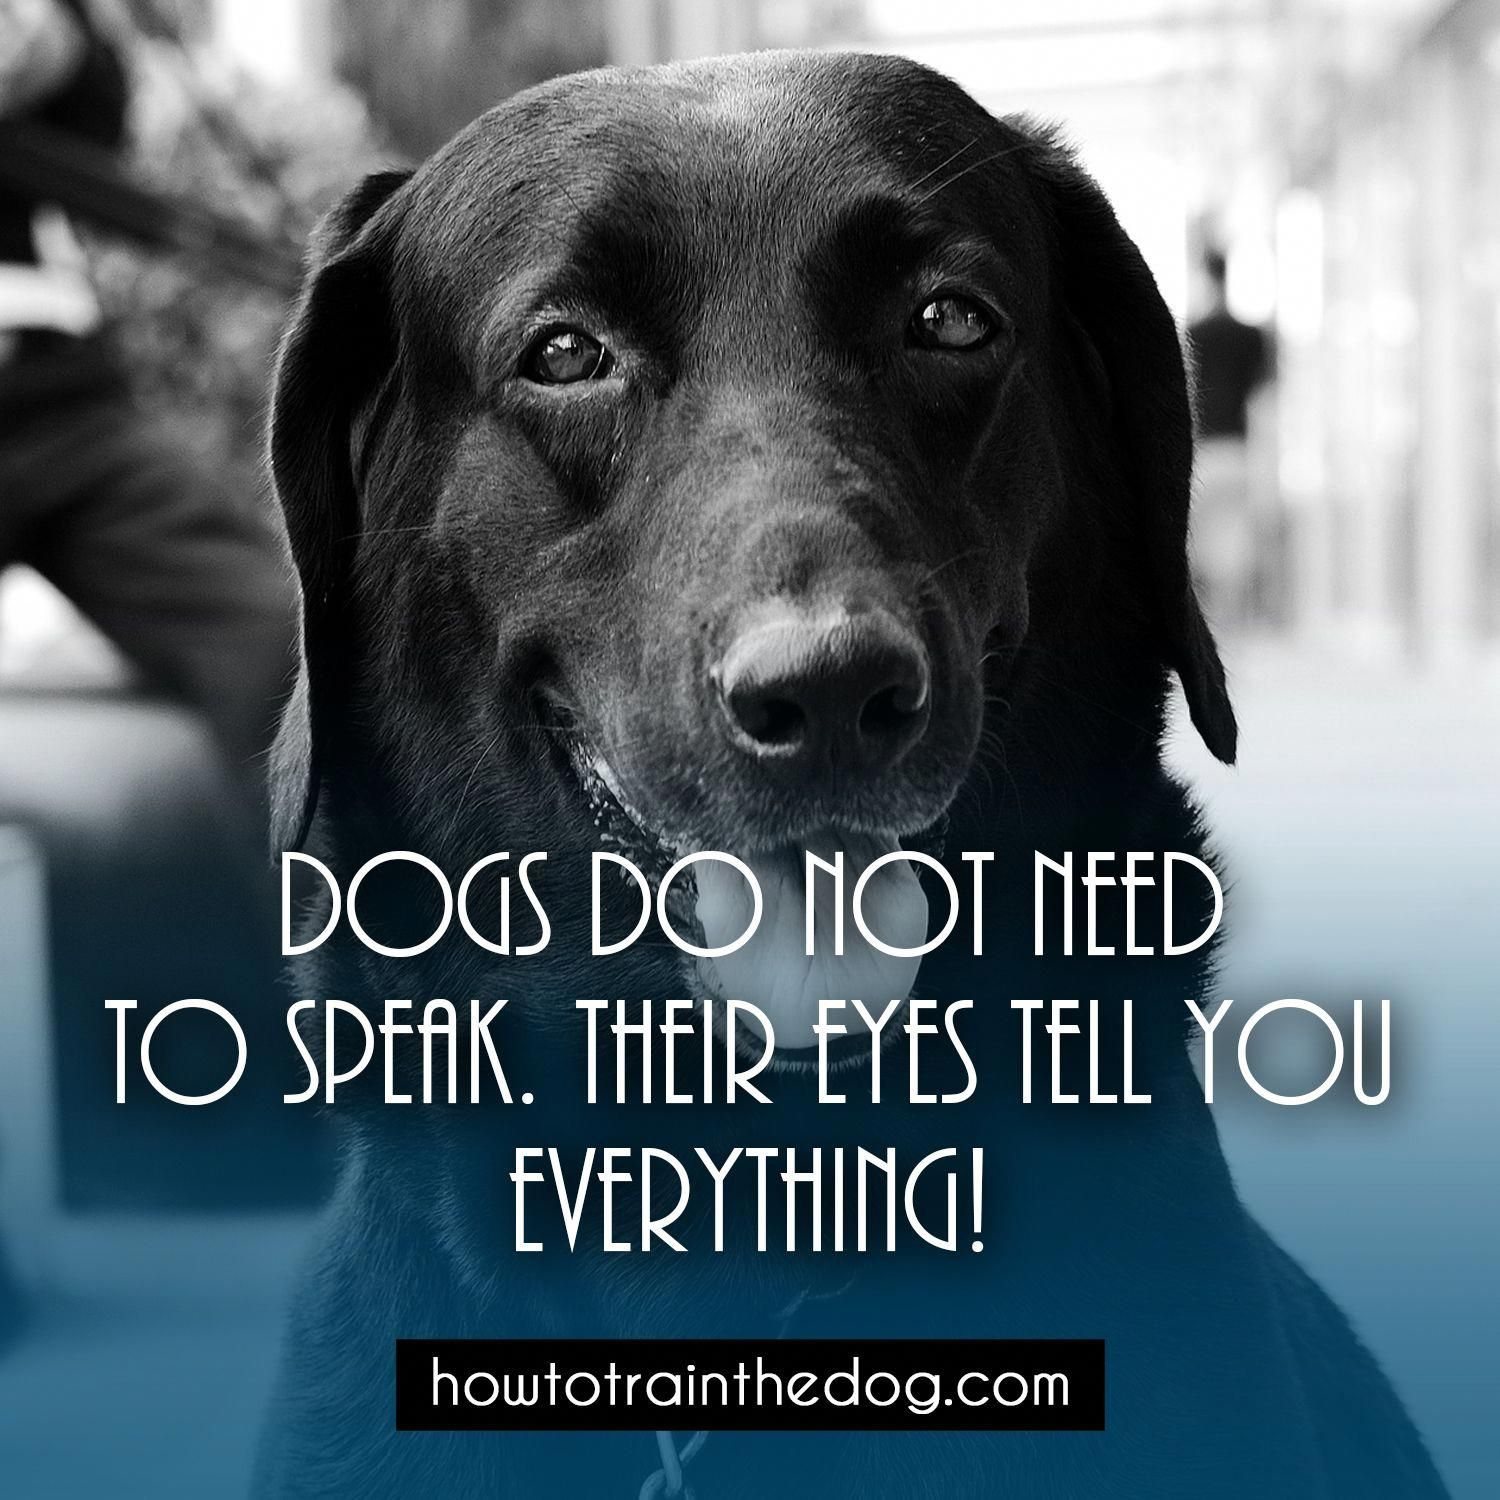 Dogs do not need to speak their eyes tell you everything